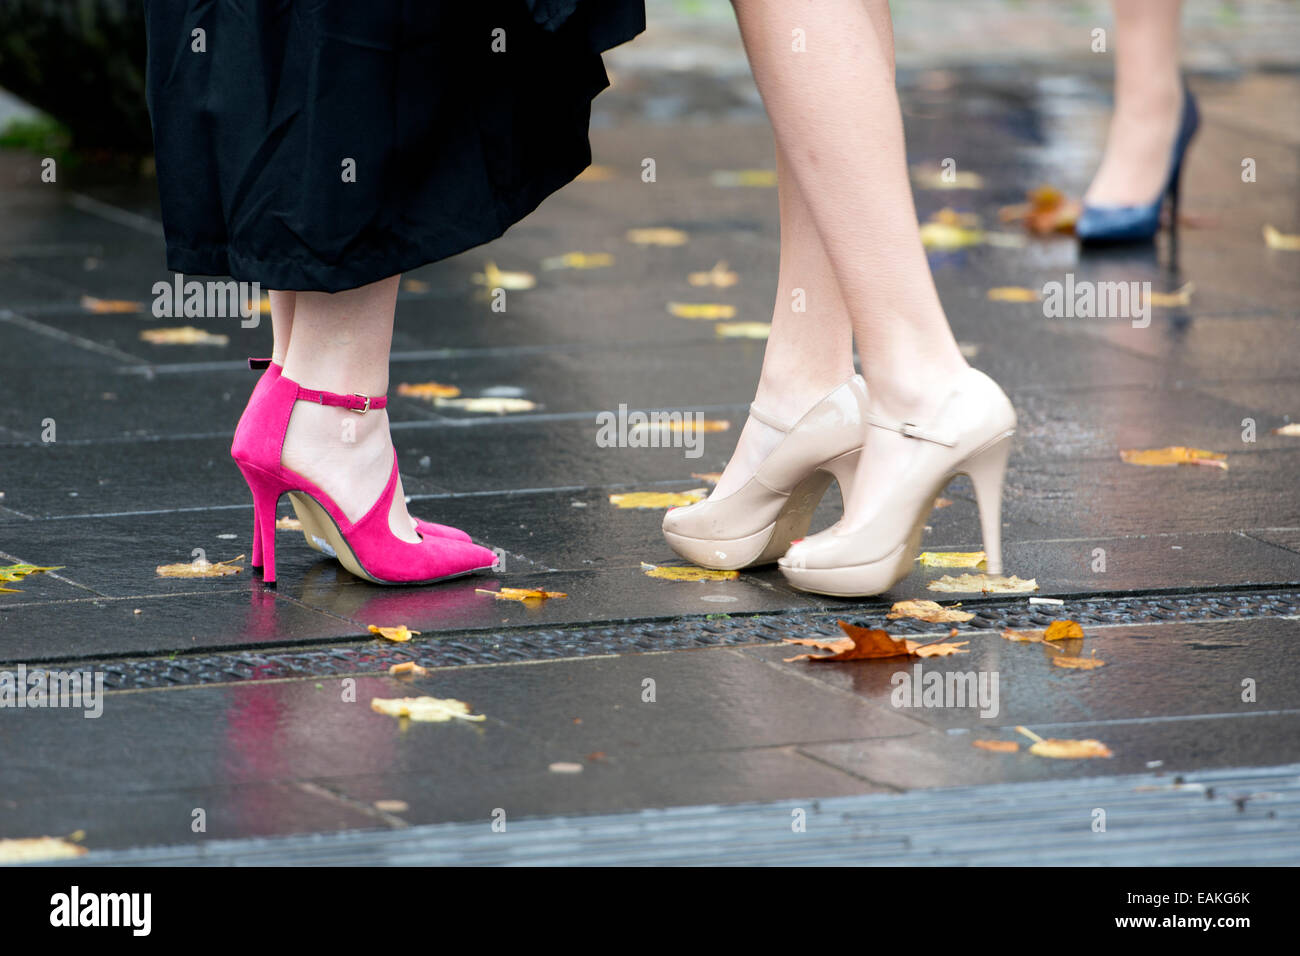 Coventry University graduation day - young women wearing stiletto heels - Stock Image